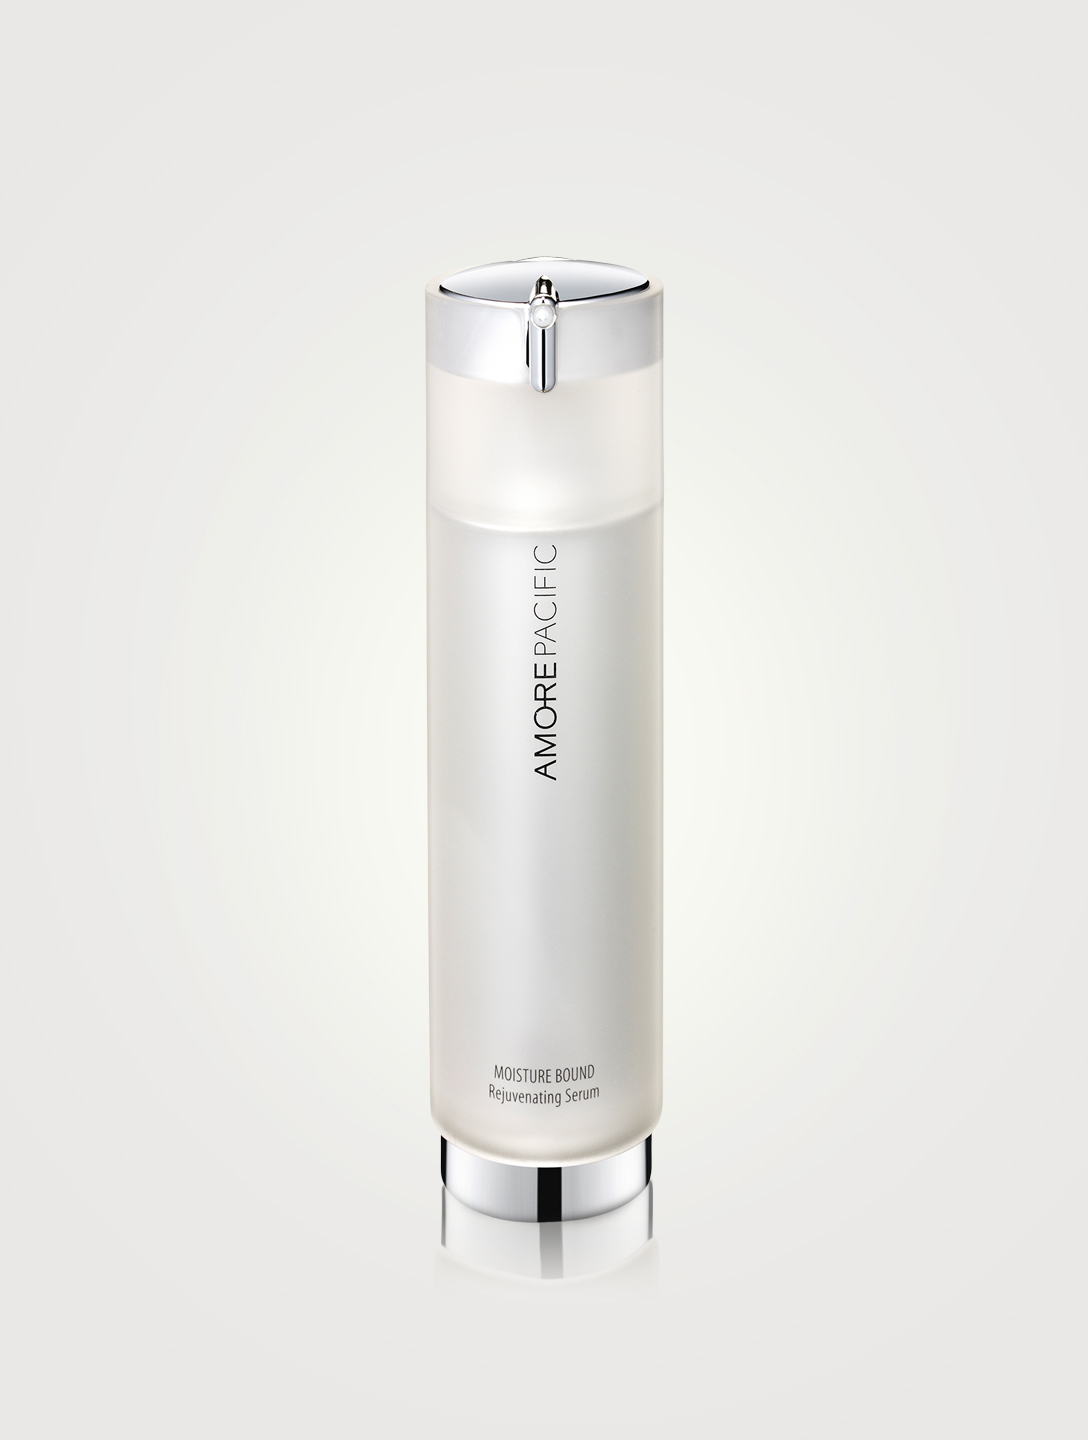 AMOREPACIFIC MOISTURE BOUND Rejuvenating Serum Beauty